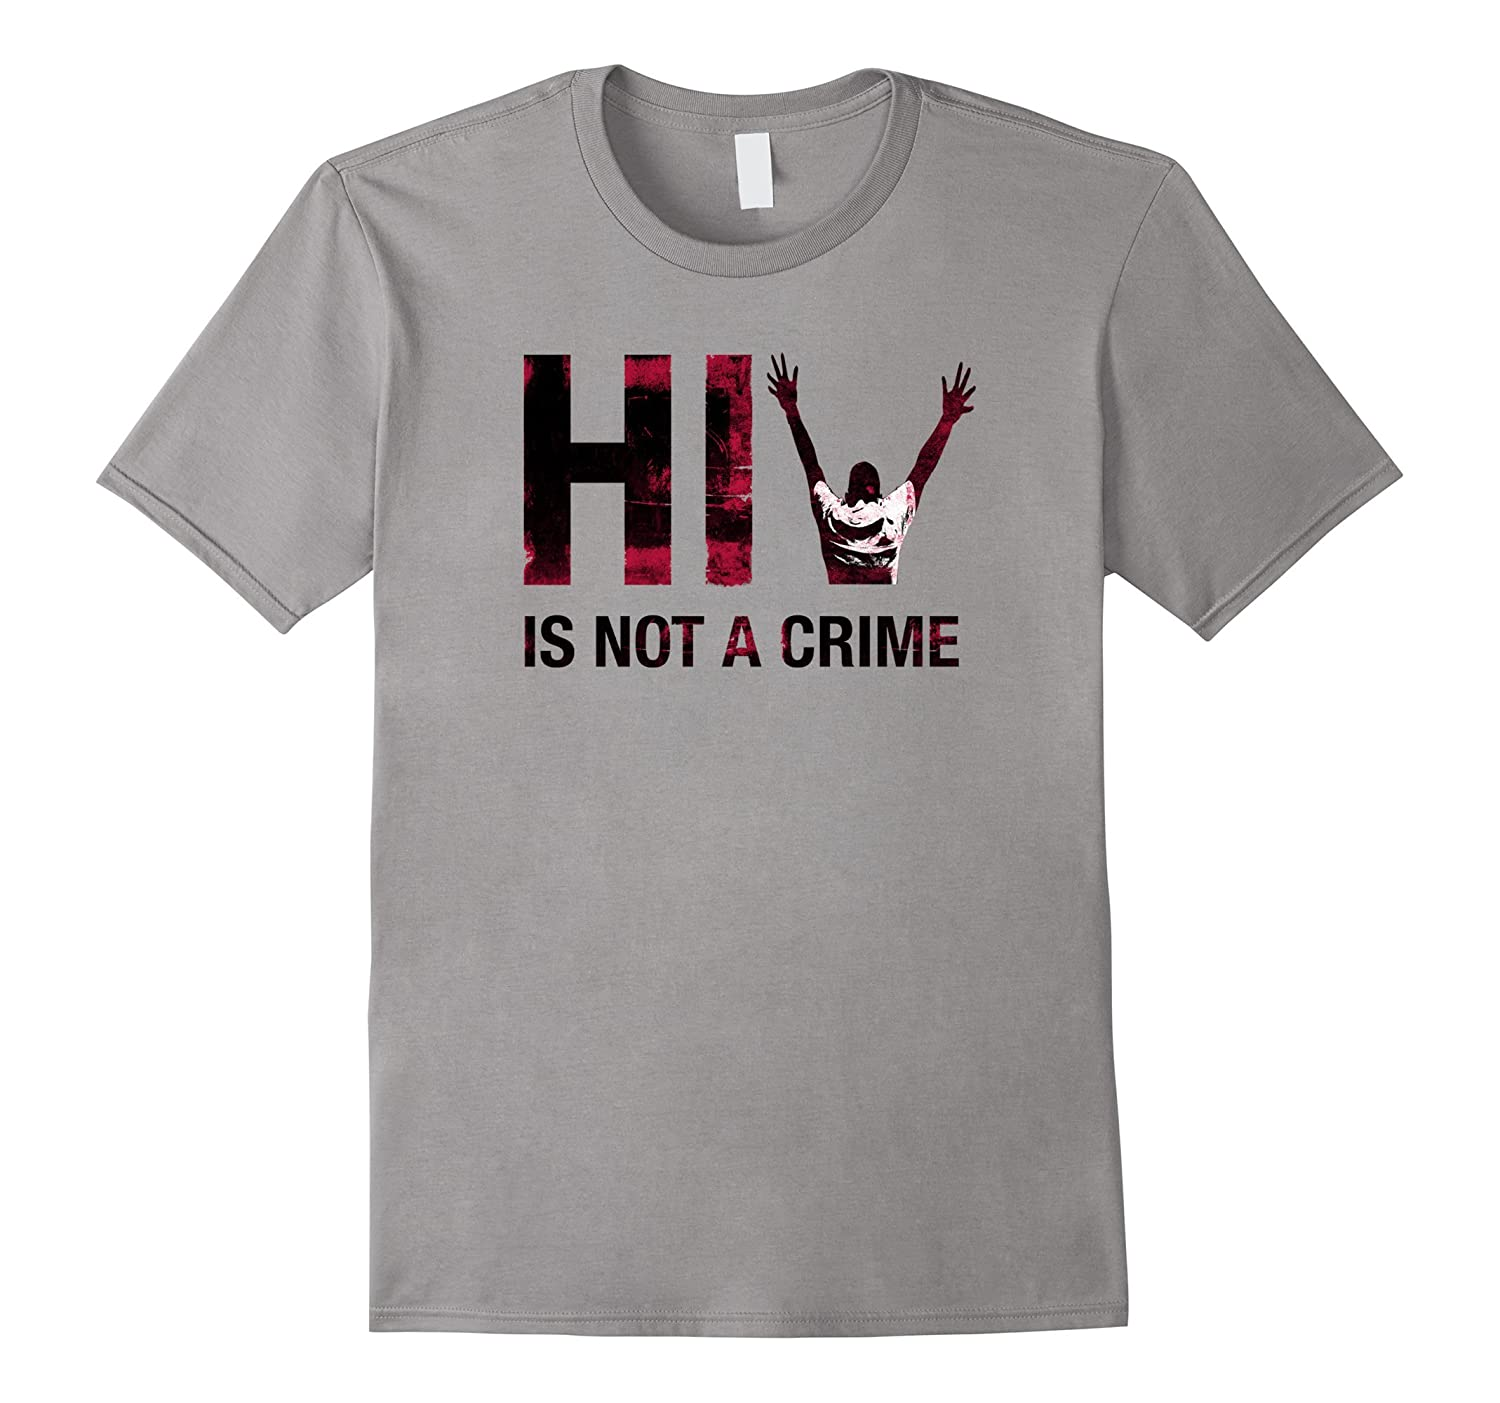 HIV is NOT a CRIME – Criminalization Awareness T-Shirt-Teehay